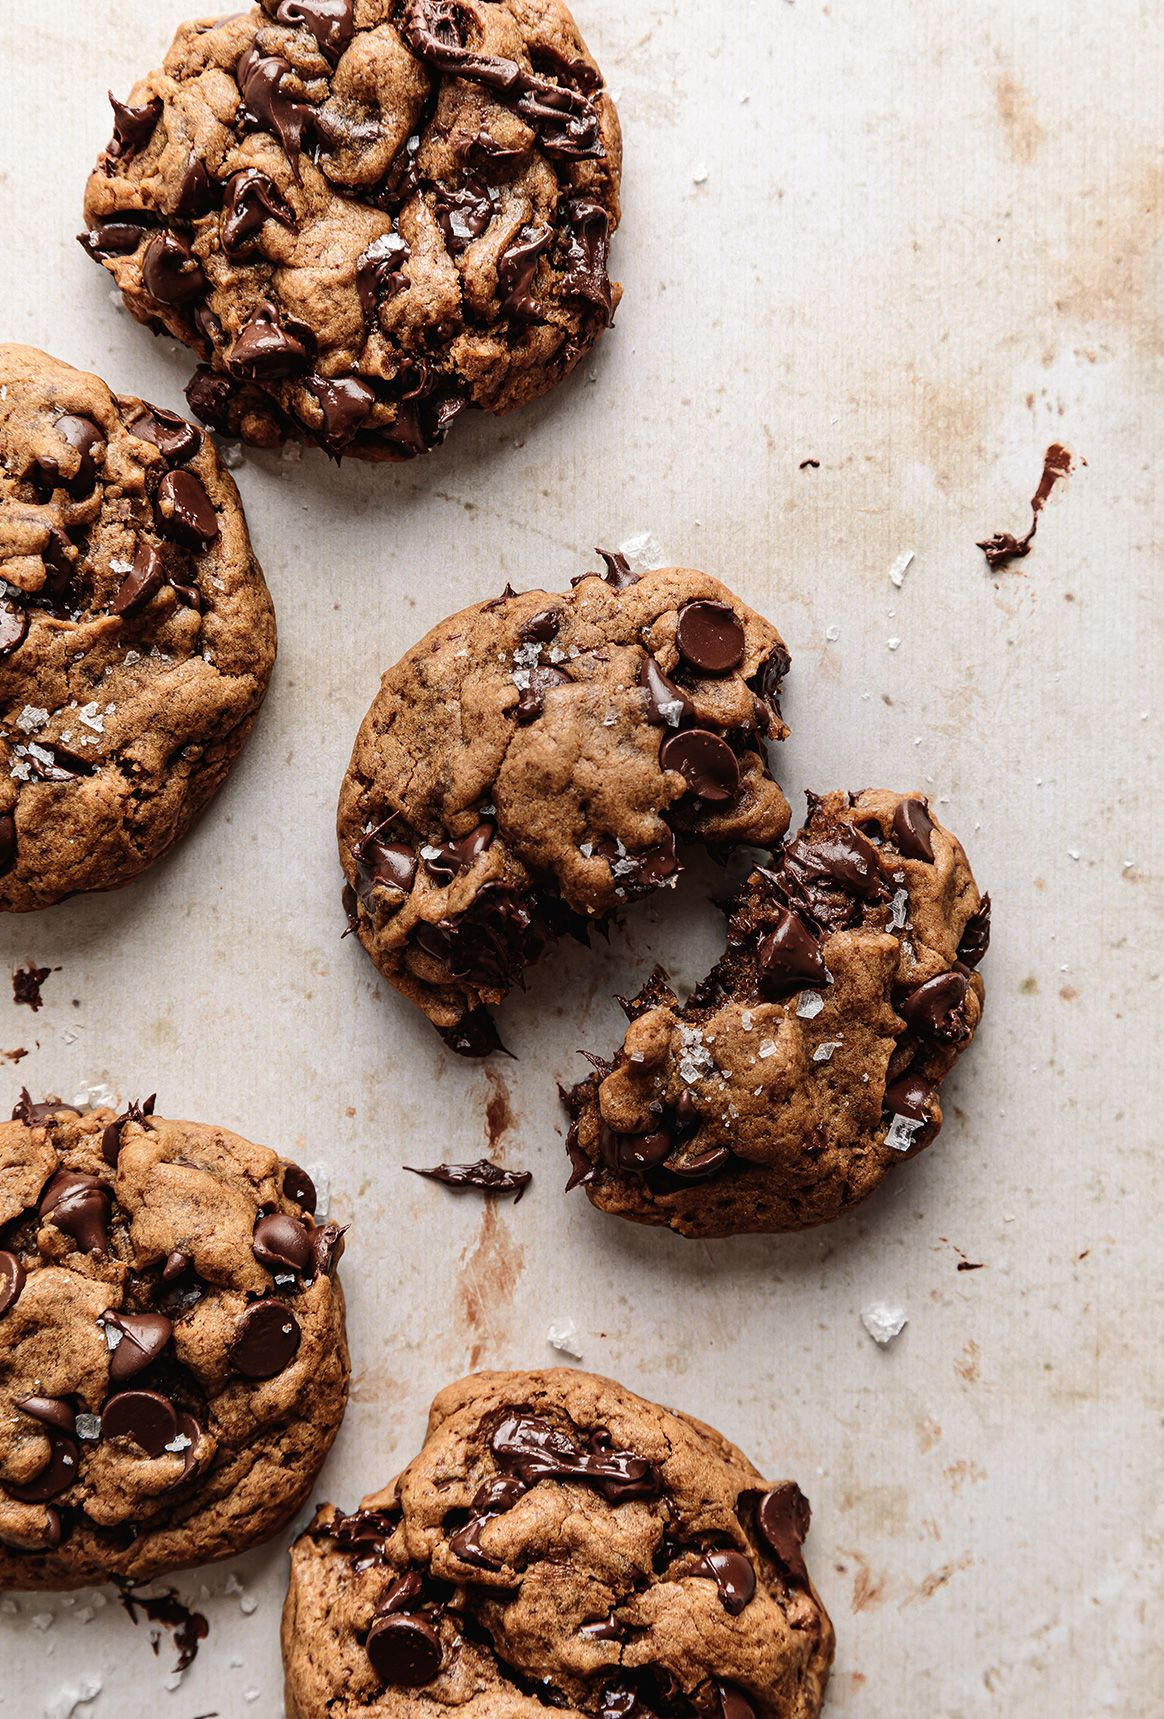 Small Batch Of Perfectly Soft Vegan Chocolate Chip Cookies With Crispy Edges An In 2020 Vegan Chocolate Chip Cookies Vegan Chocolate Chip Crispy Chocolate Chip Cookies